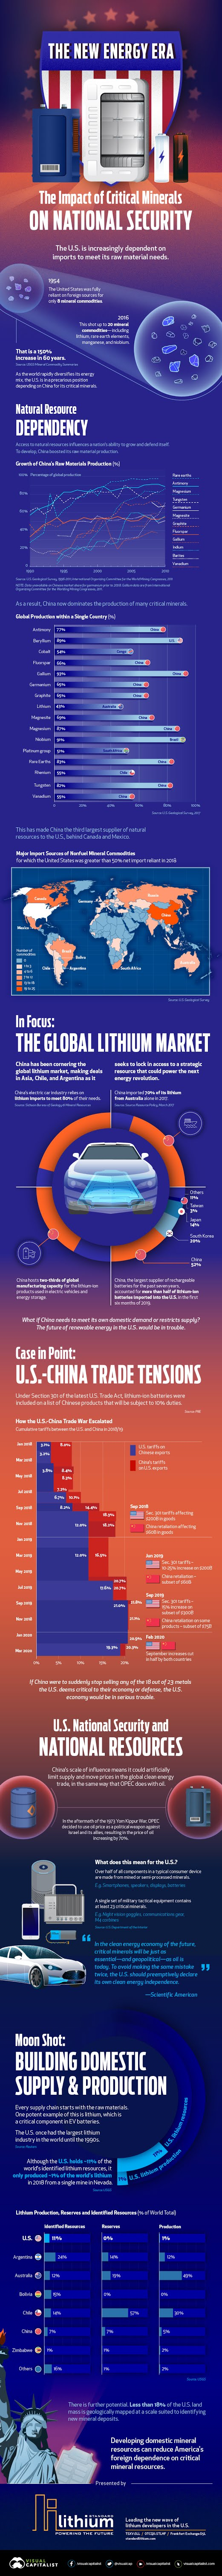 The New Energy Era: The Impact of Critical Minerals on National Security #infographic